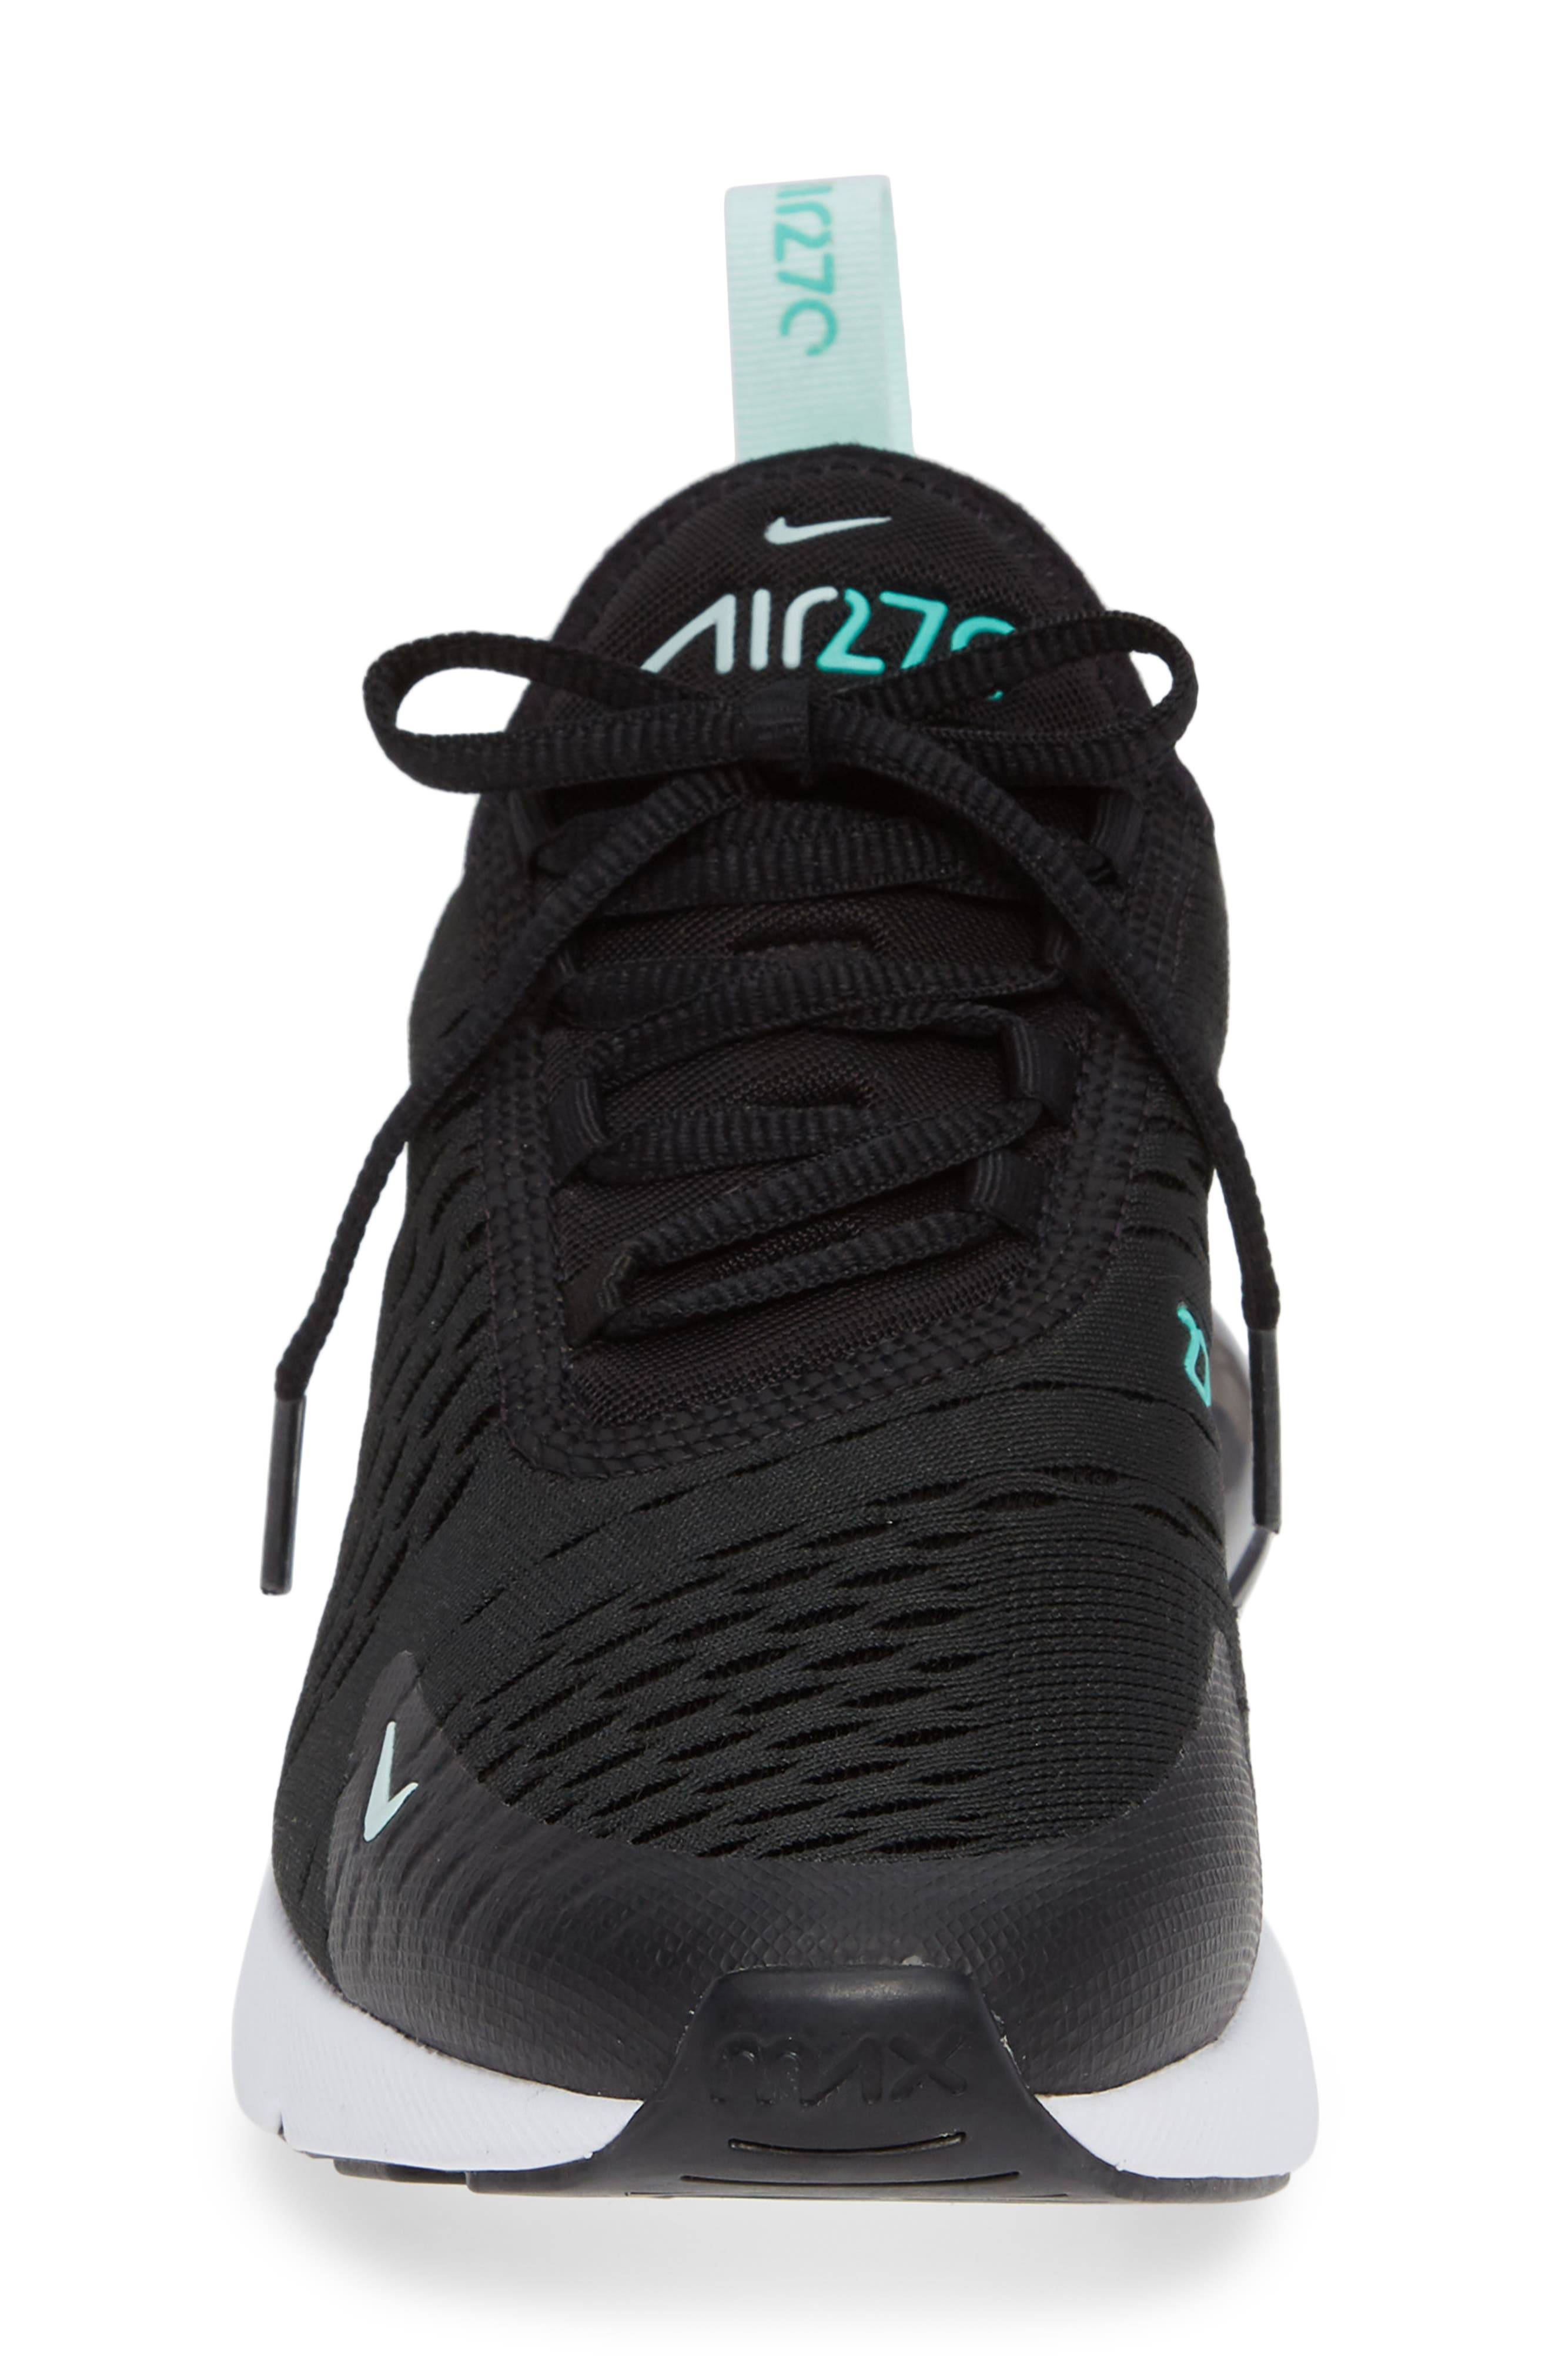 Air Max 270 Premium Sneaker,                             Alternate thumbnail 4, color,                             BLACK/ IGLOO TURQUOISE WHITE